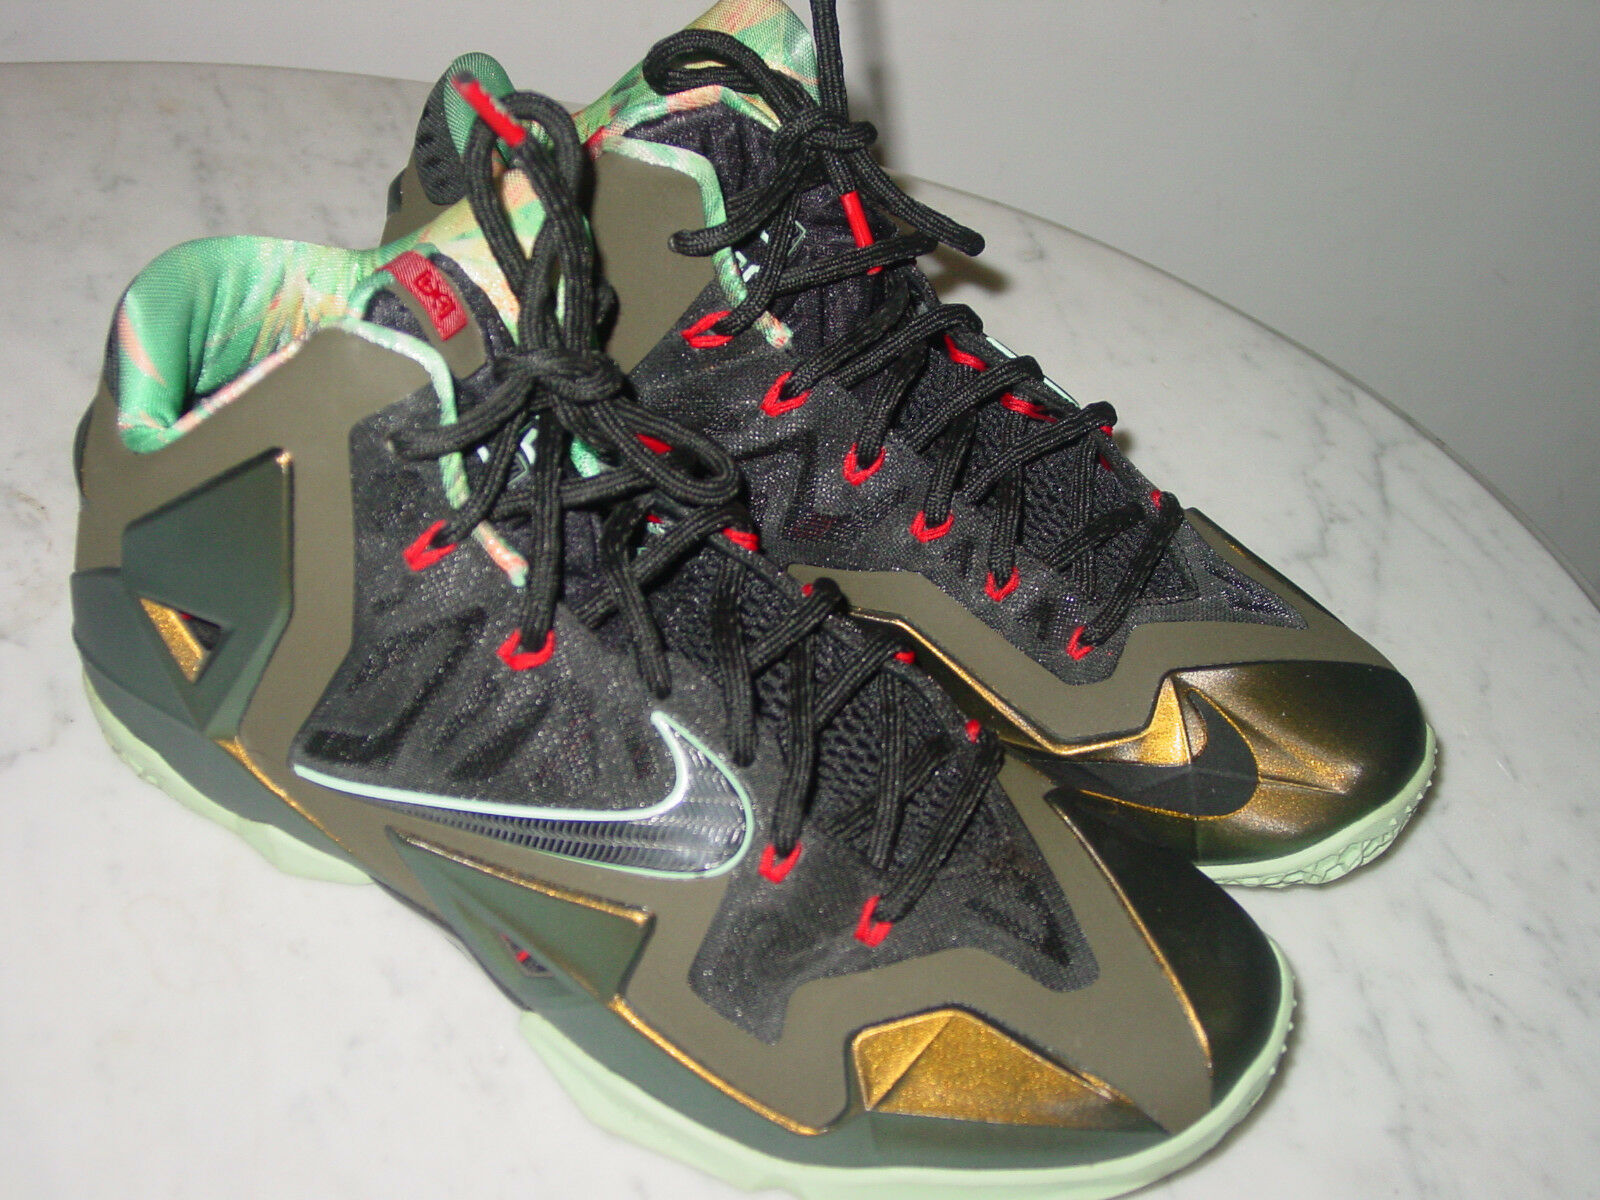 2013 Nike Lebron 11  Kings Pride  Parachute gold Arctic Green shoes  Size 10